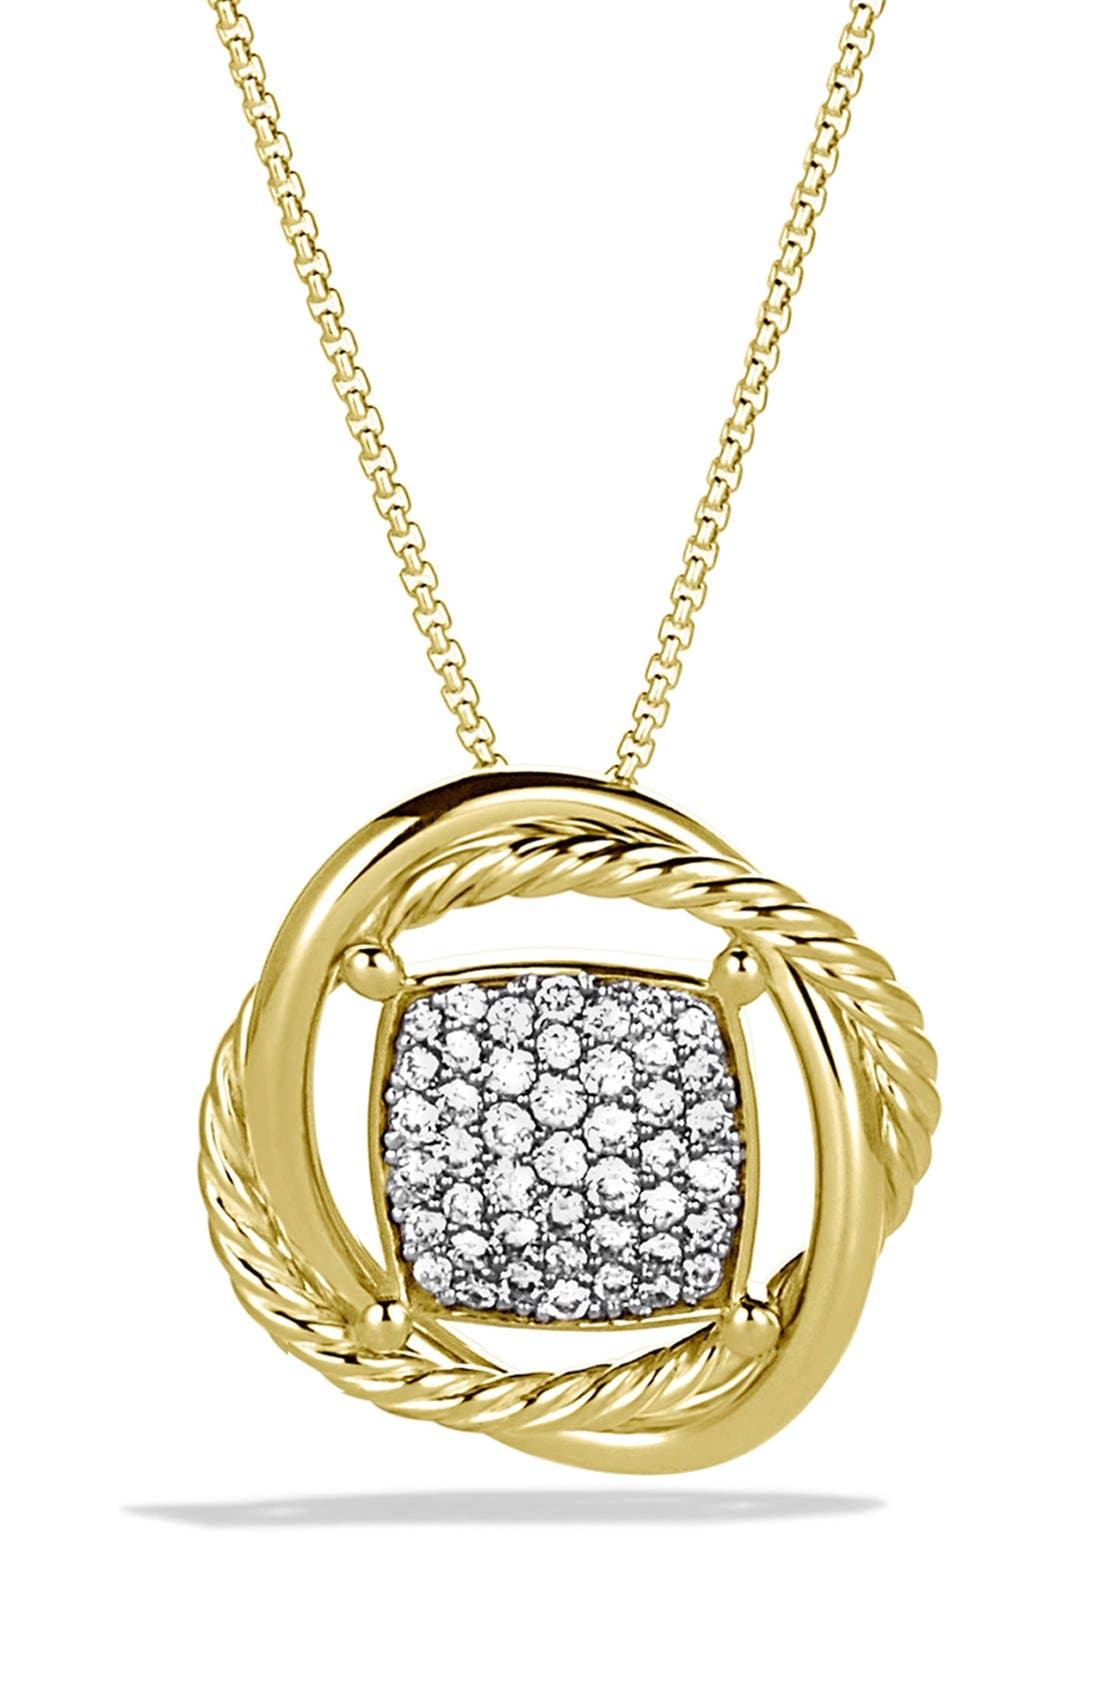 DAVID YURMAN Infinity Infinity Pendant with Diamonds in Gold on Chain